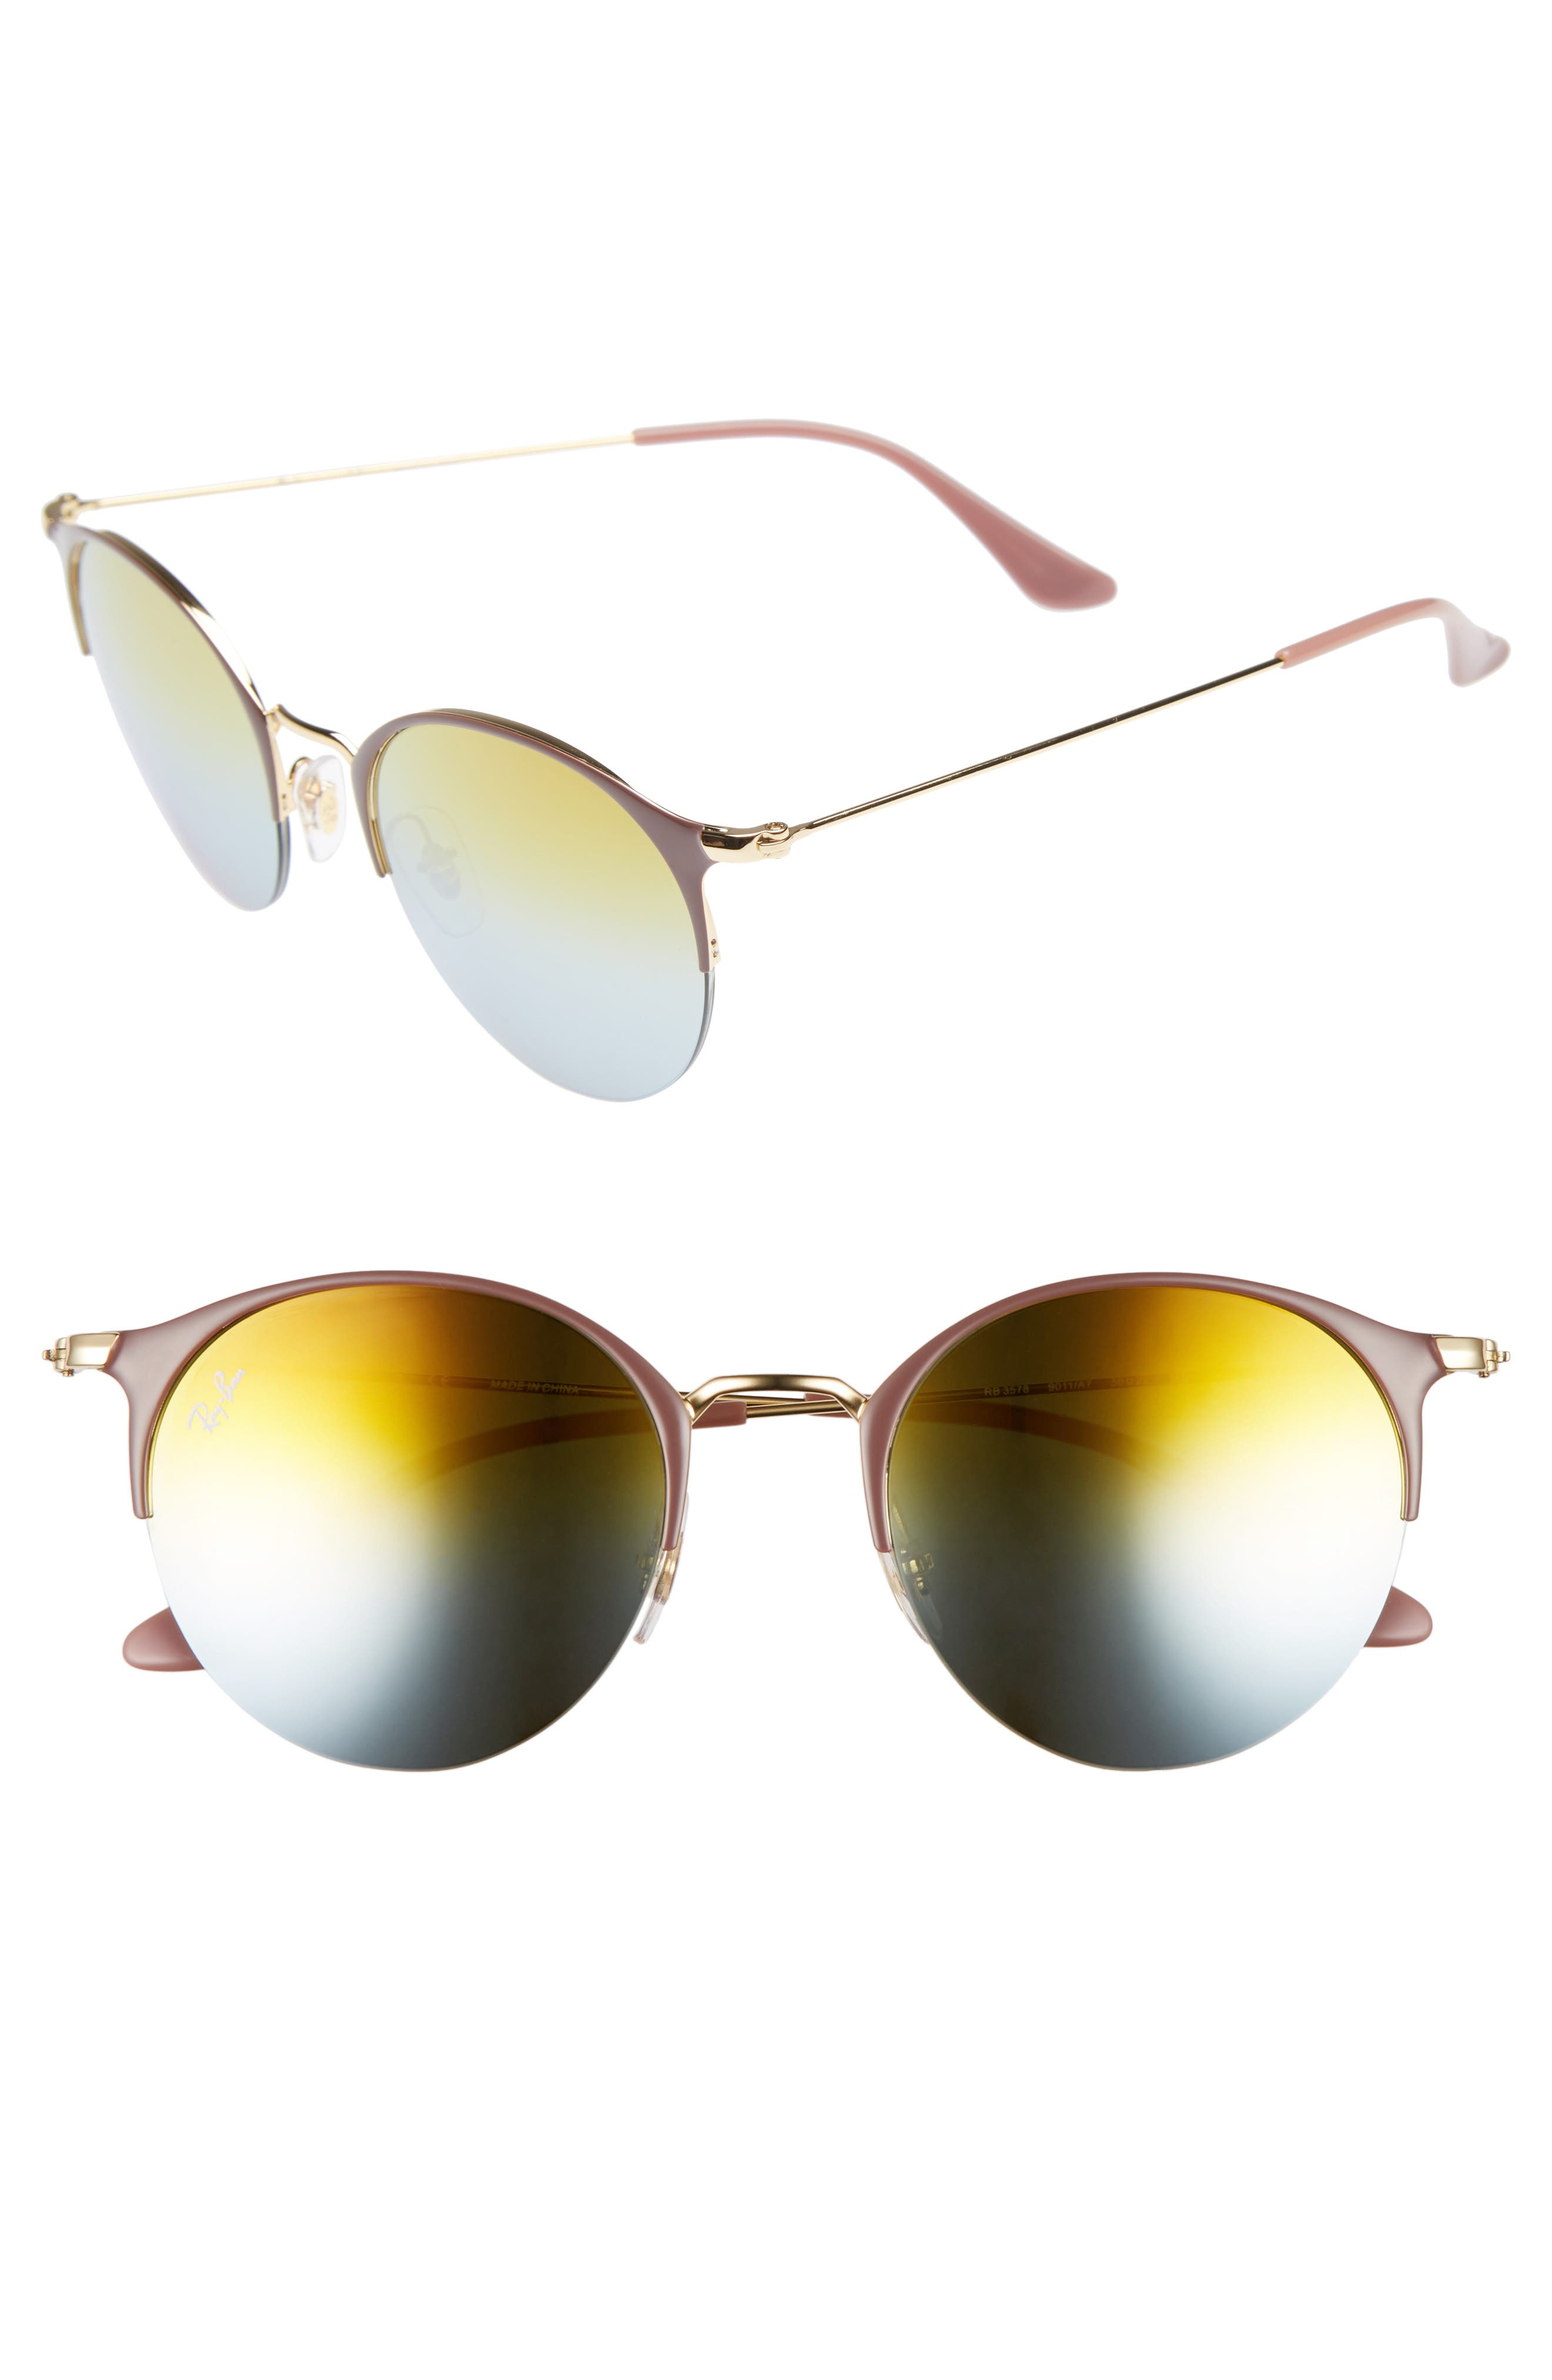 50mm Round Sunglasses,                         Main,                         color, GOLD TOP/ GREEN GRADIENT